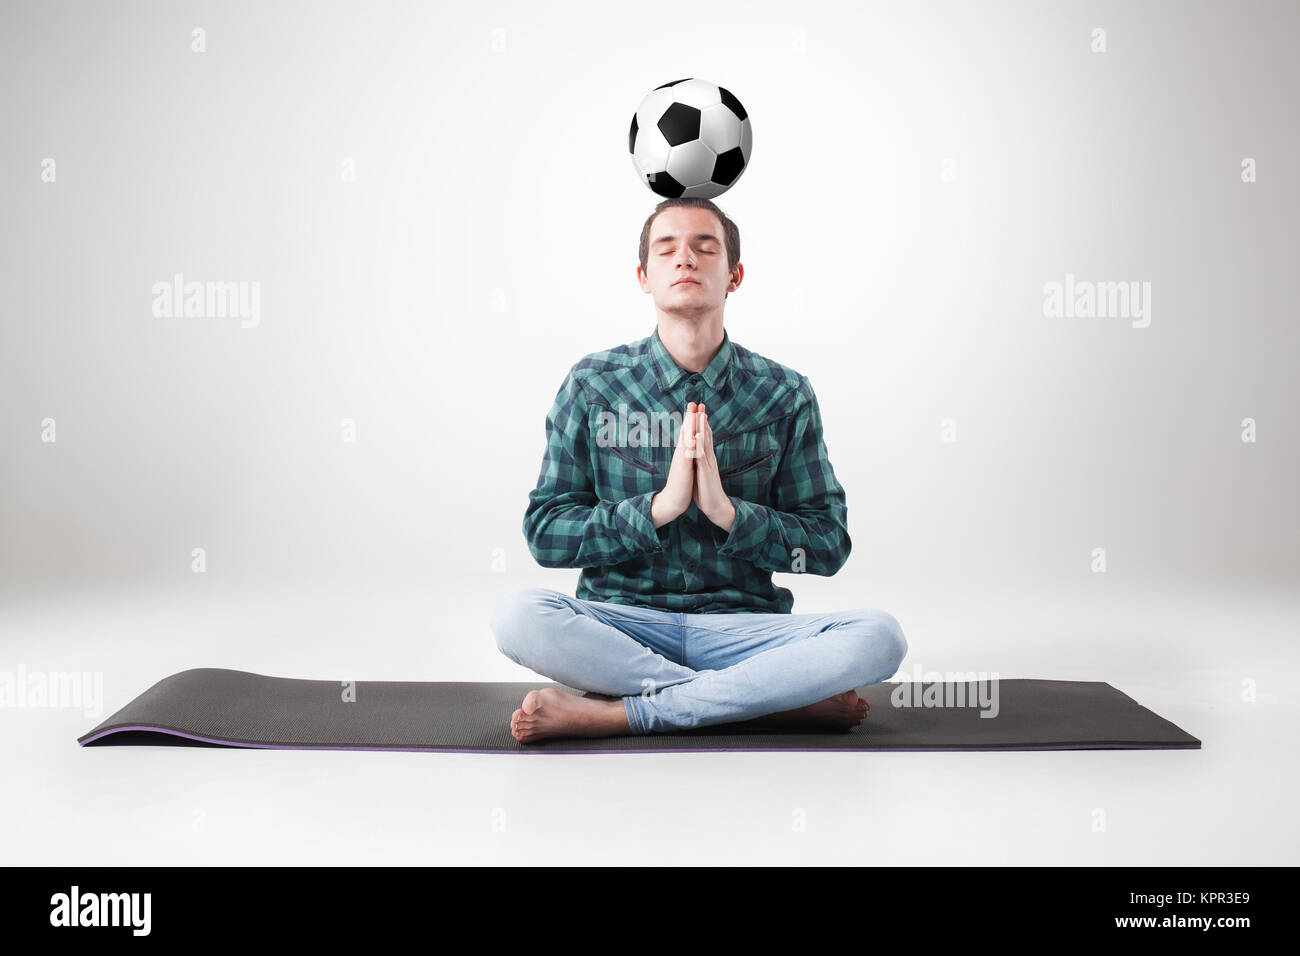 Portrait  of young man, practicing yoga with football ball - Stock Image